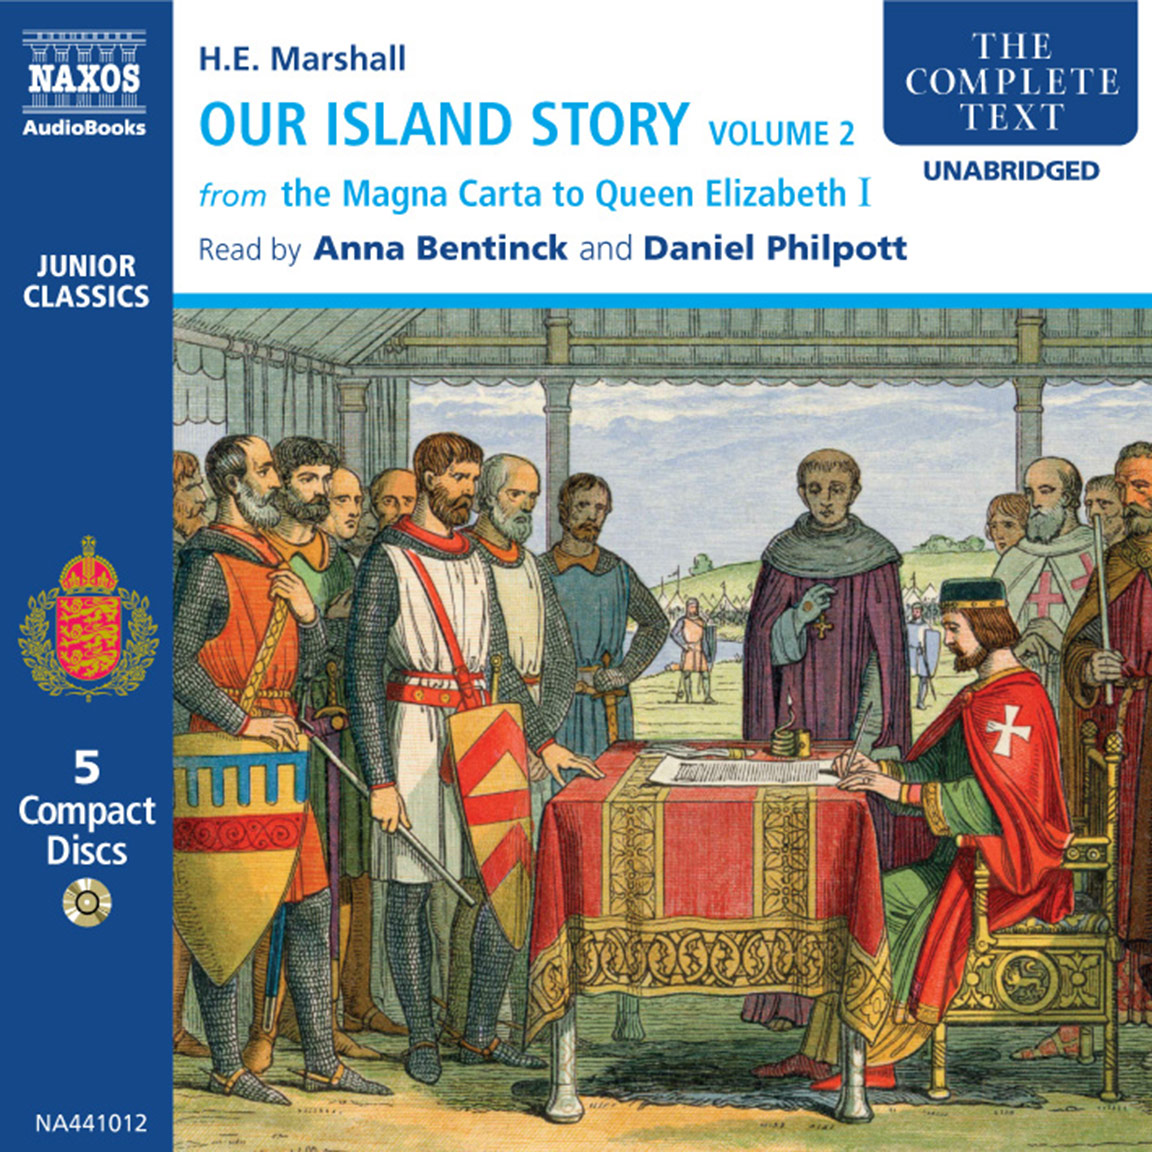 Our Island Story – Volume 2 (unabridged)